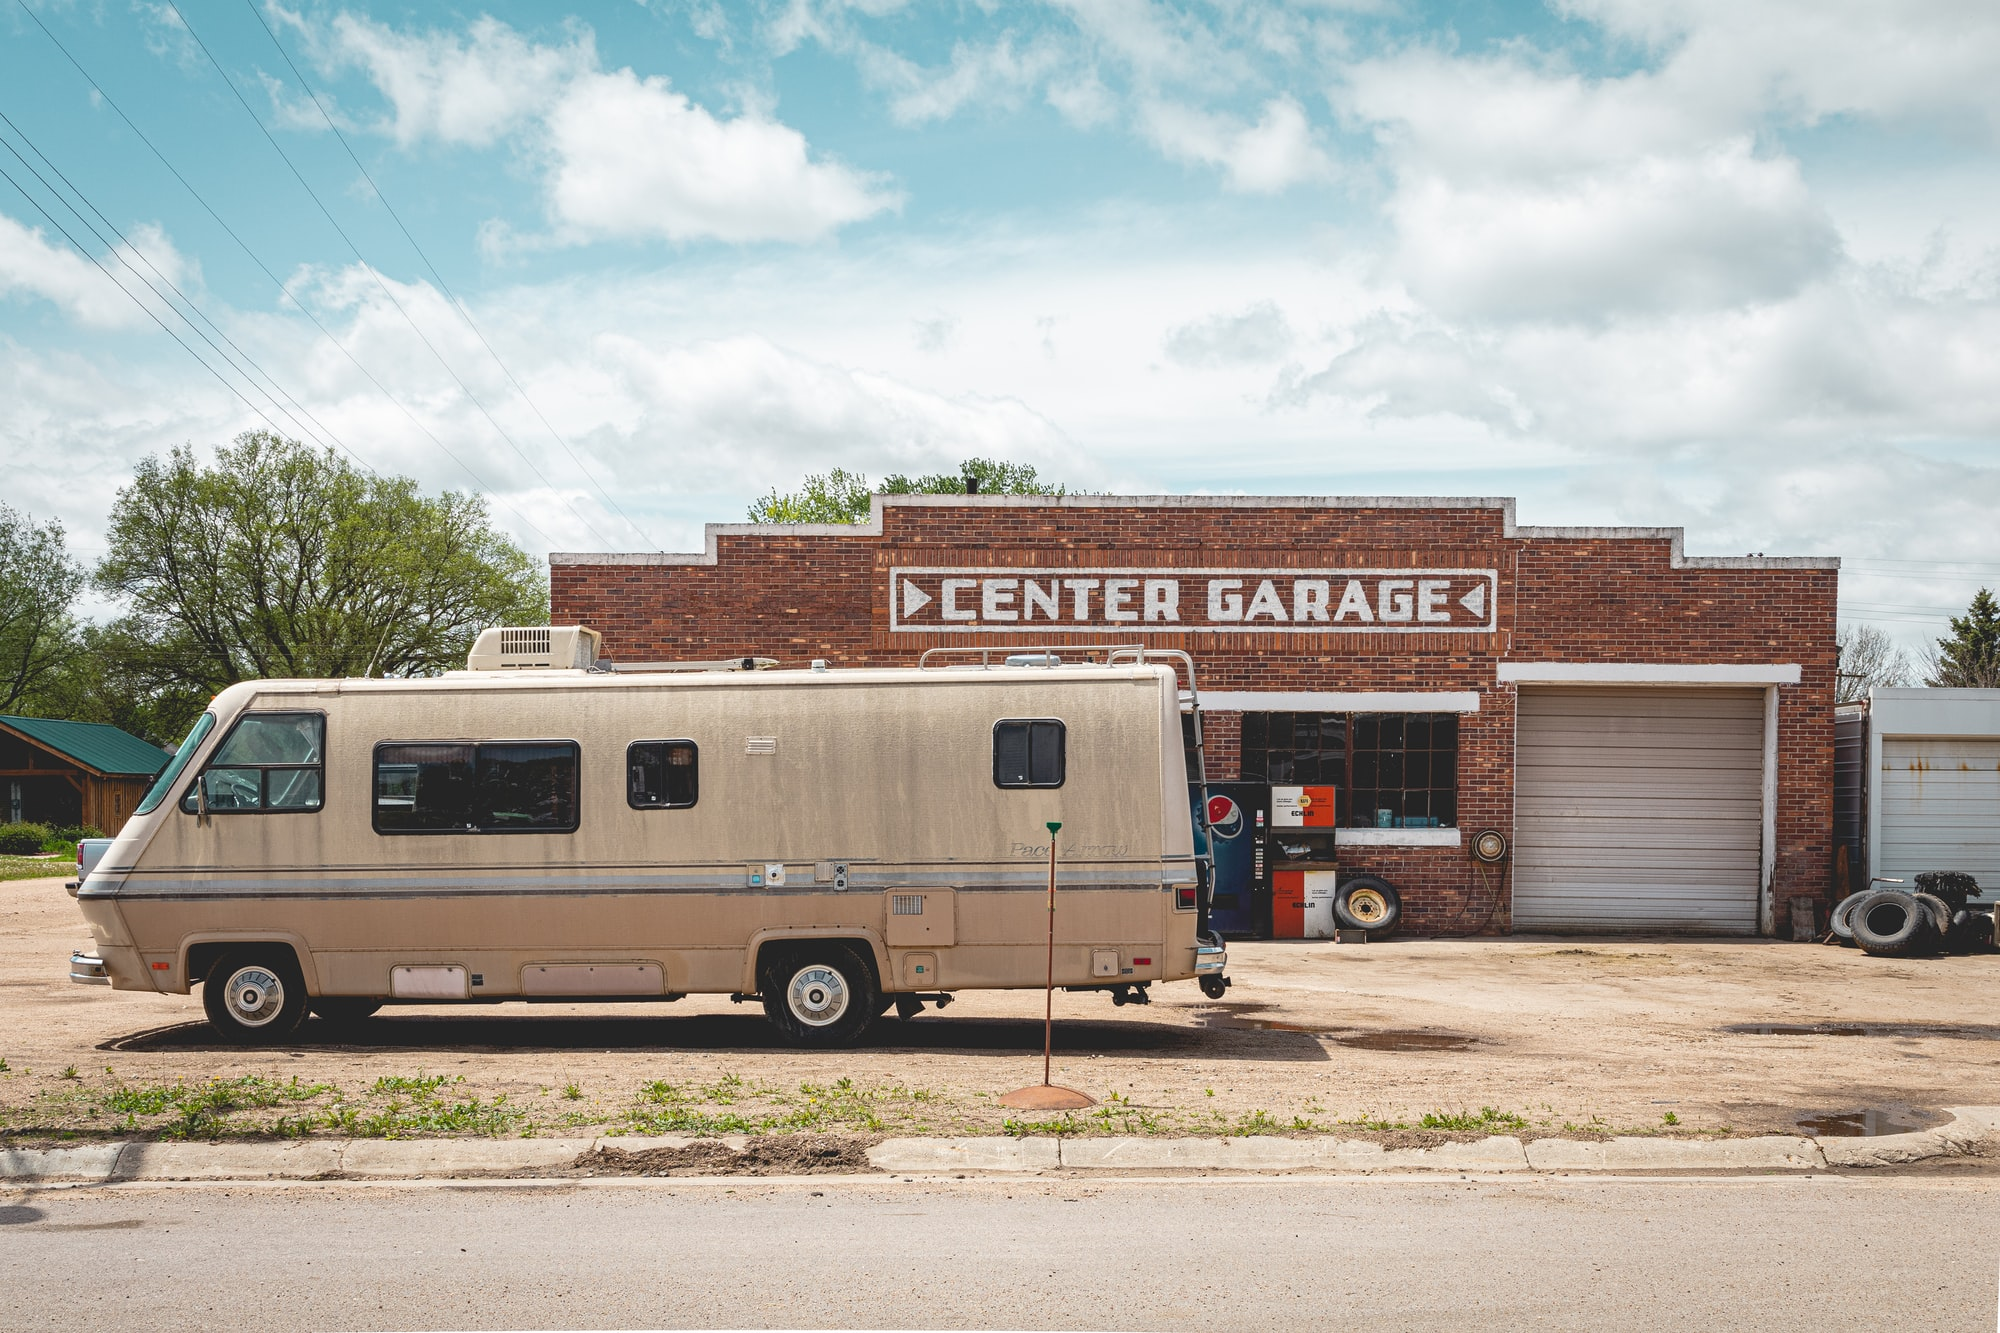 RV Storage: 5 Cheapest Ways to Store Your RV